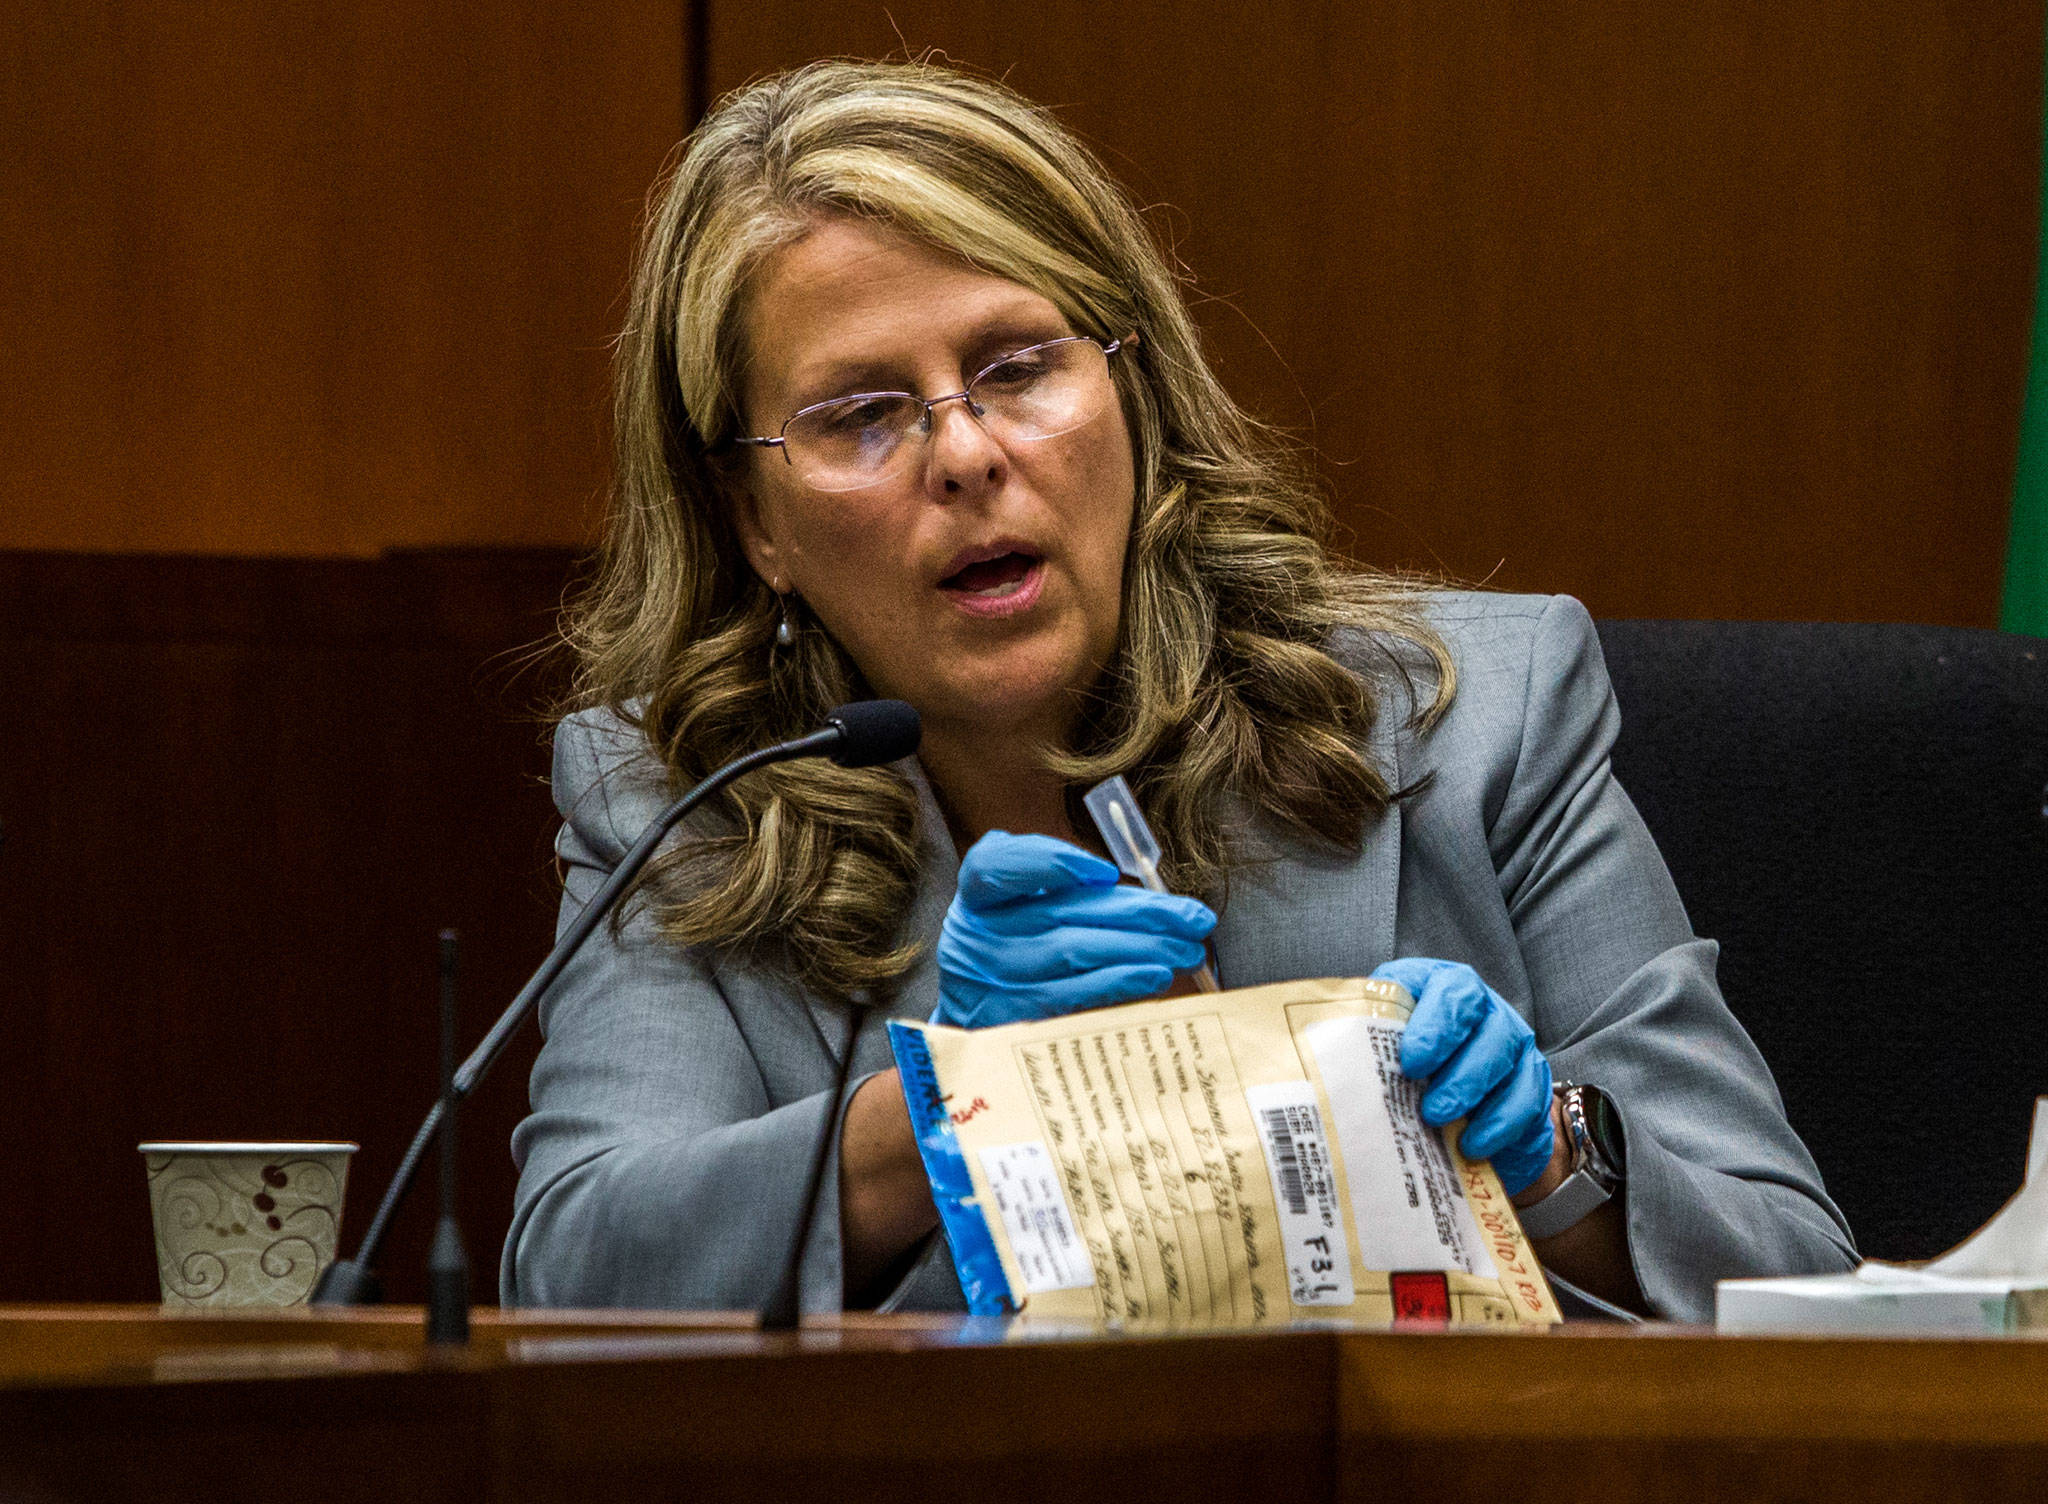 Lisa Collins, a forensic scientist with the Washington State Patrol, looks at a swab used to collect DNA from William Talbott II during the trial of William Talbott II at the Snohomish County Courthouse on Monday in Everett. (Olivia Vanni / The Herald)